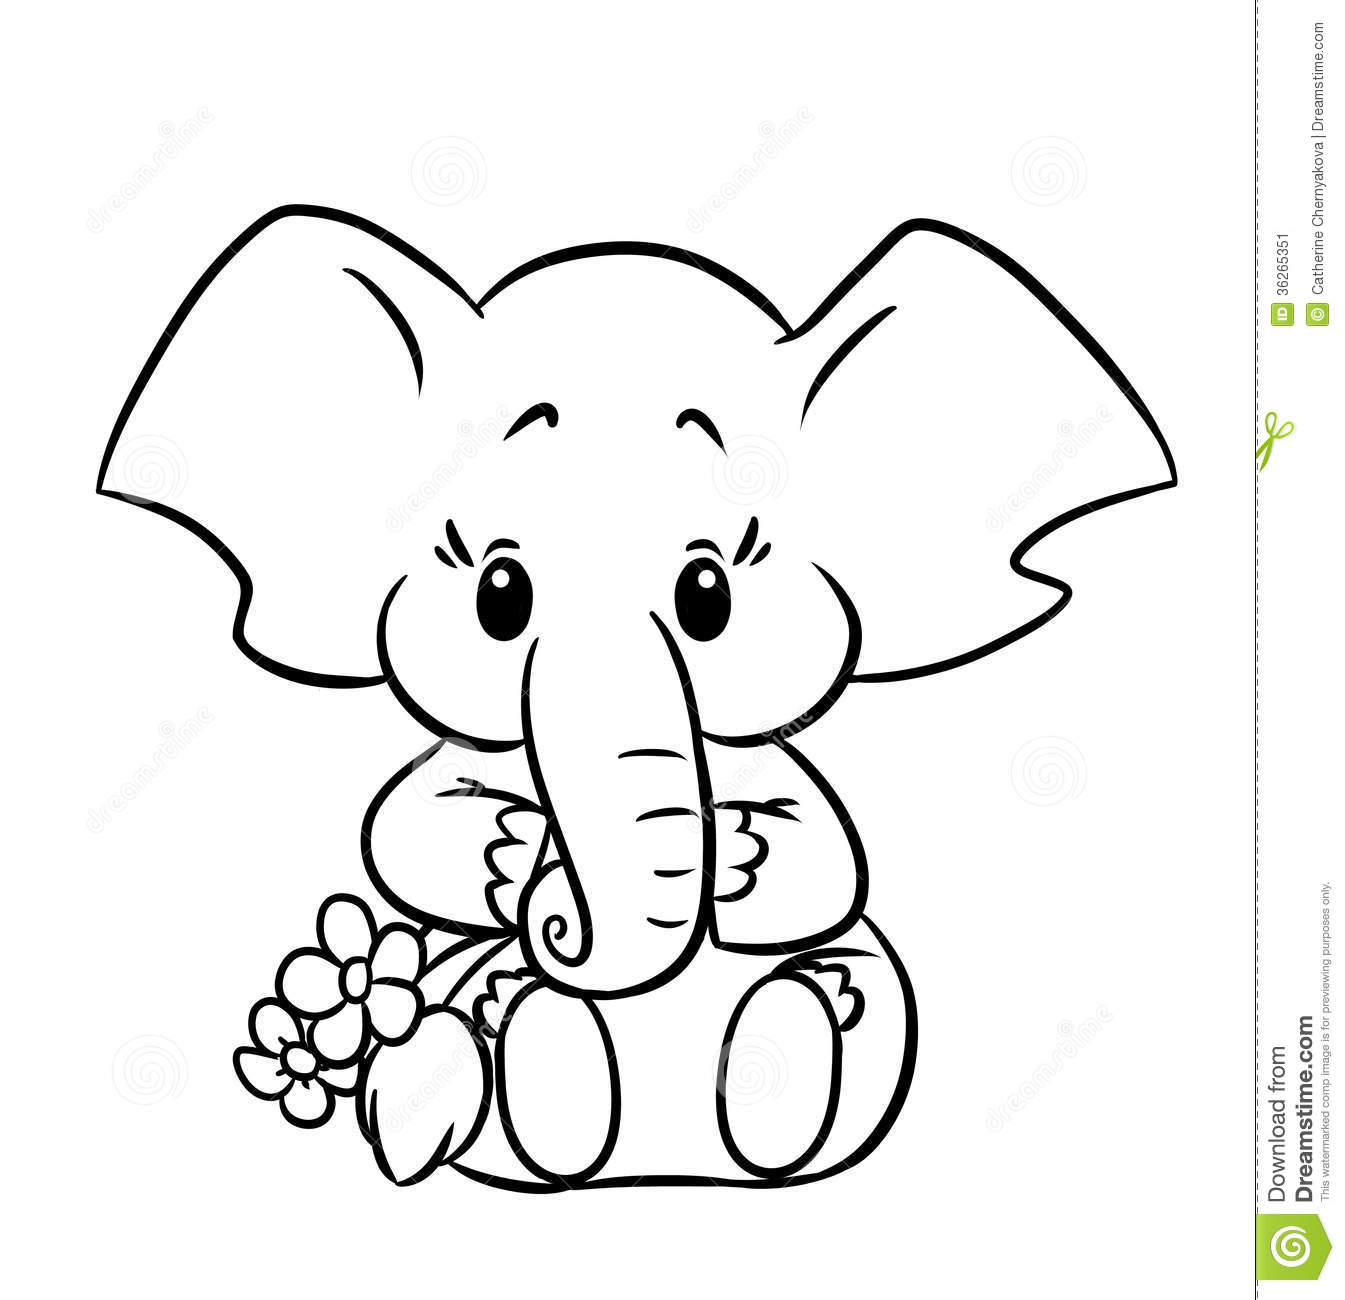 printable baby-elephant coloring pages,printable,coloring pages